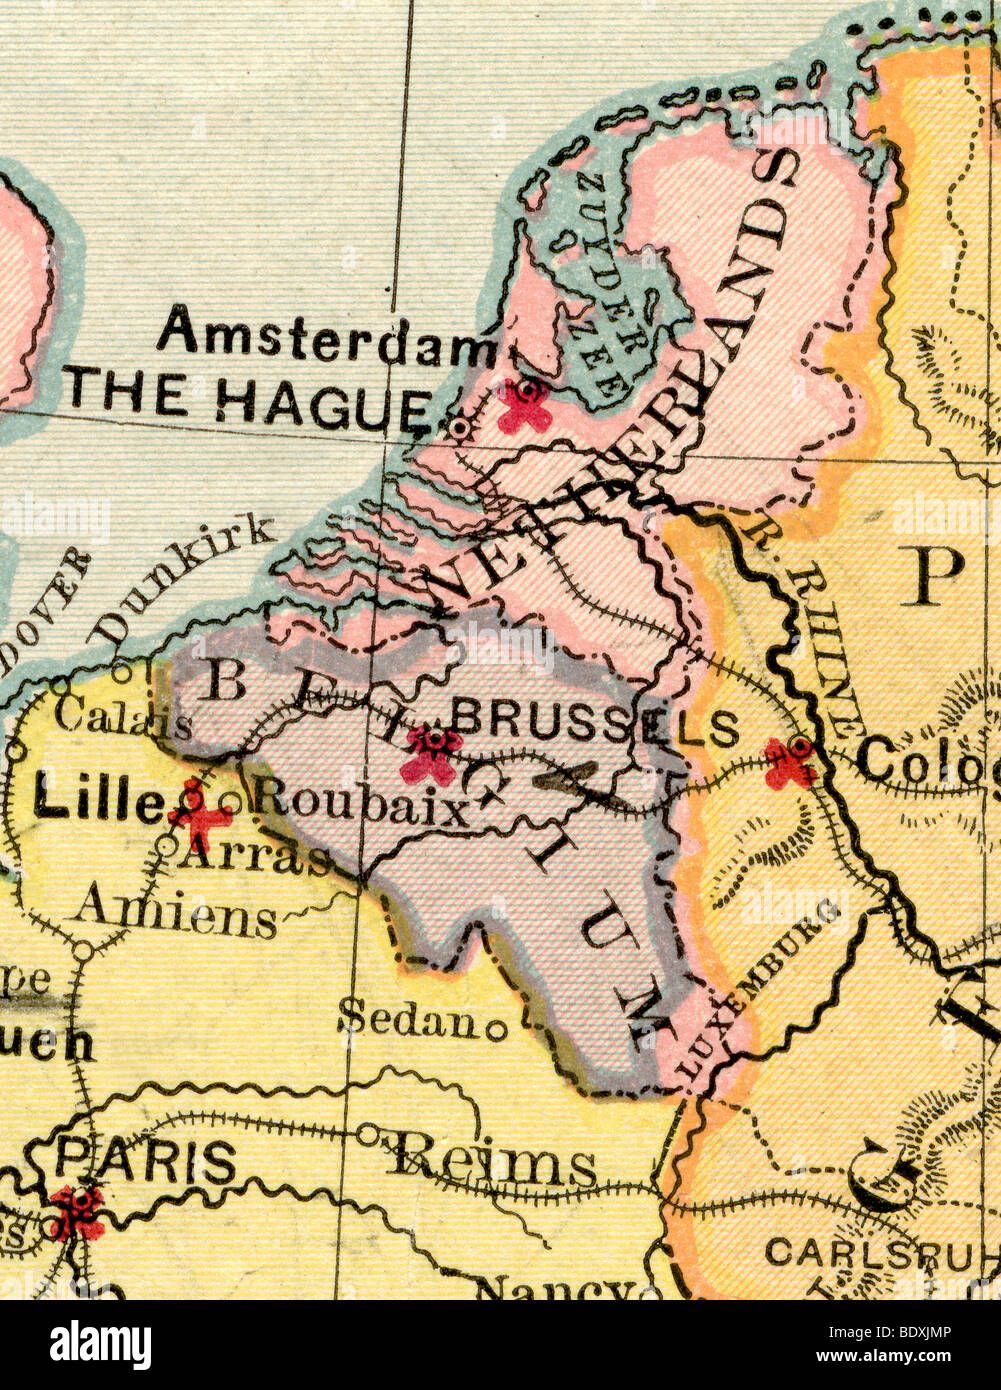 original old map of belgium and netherlands from 1875 geography textbook